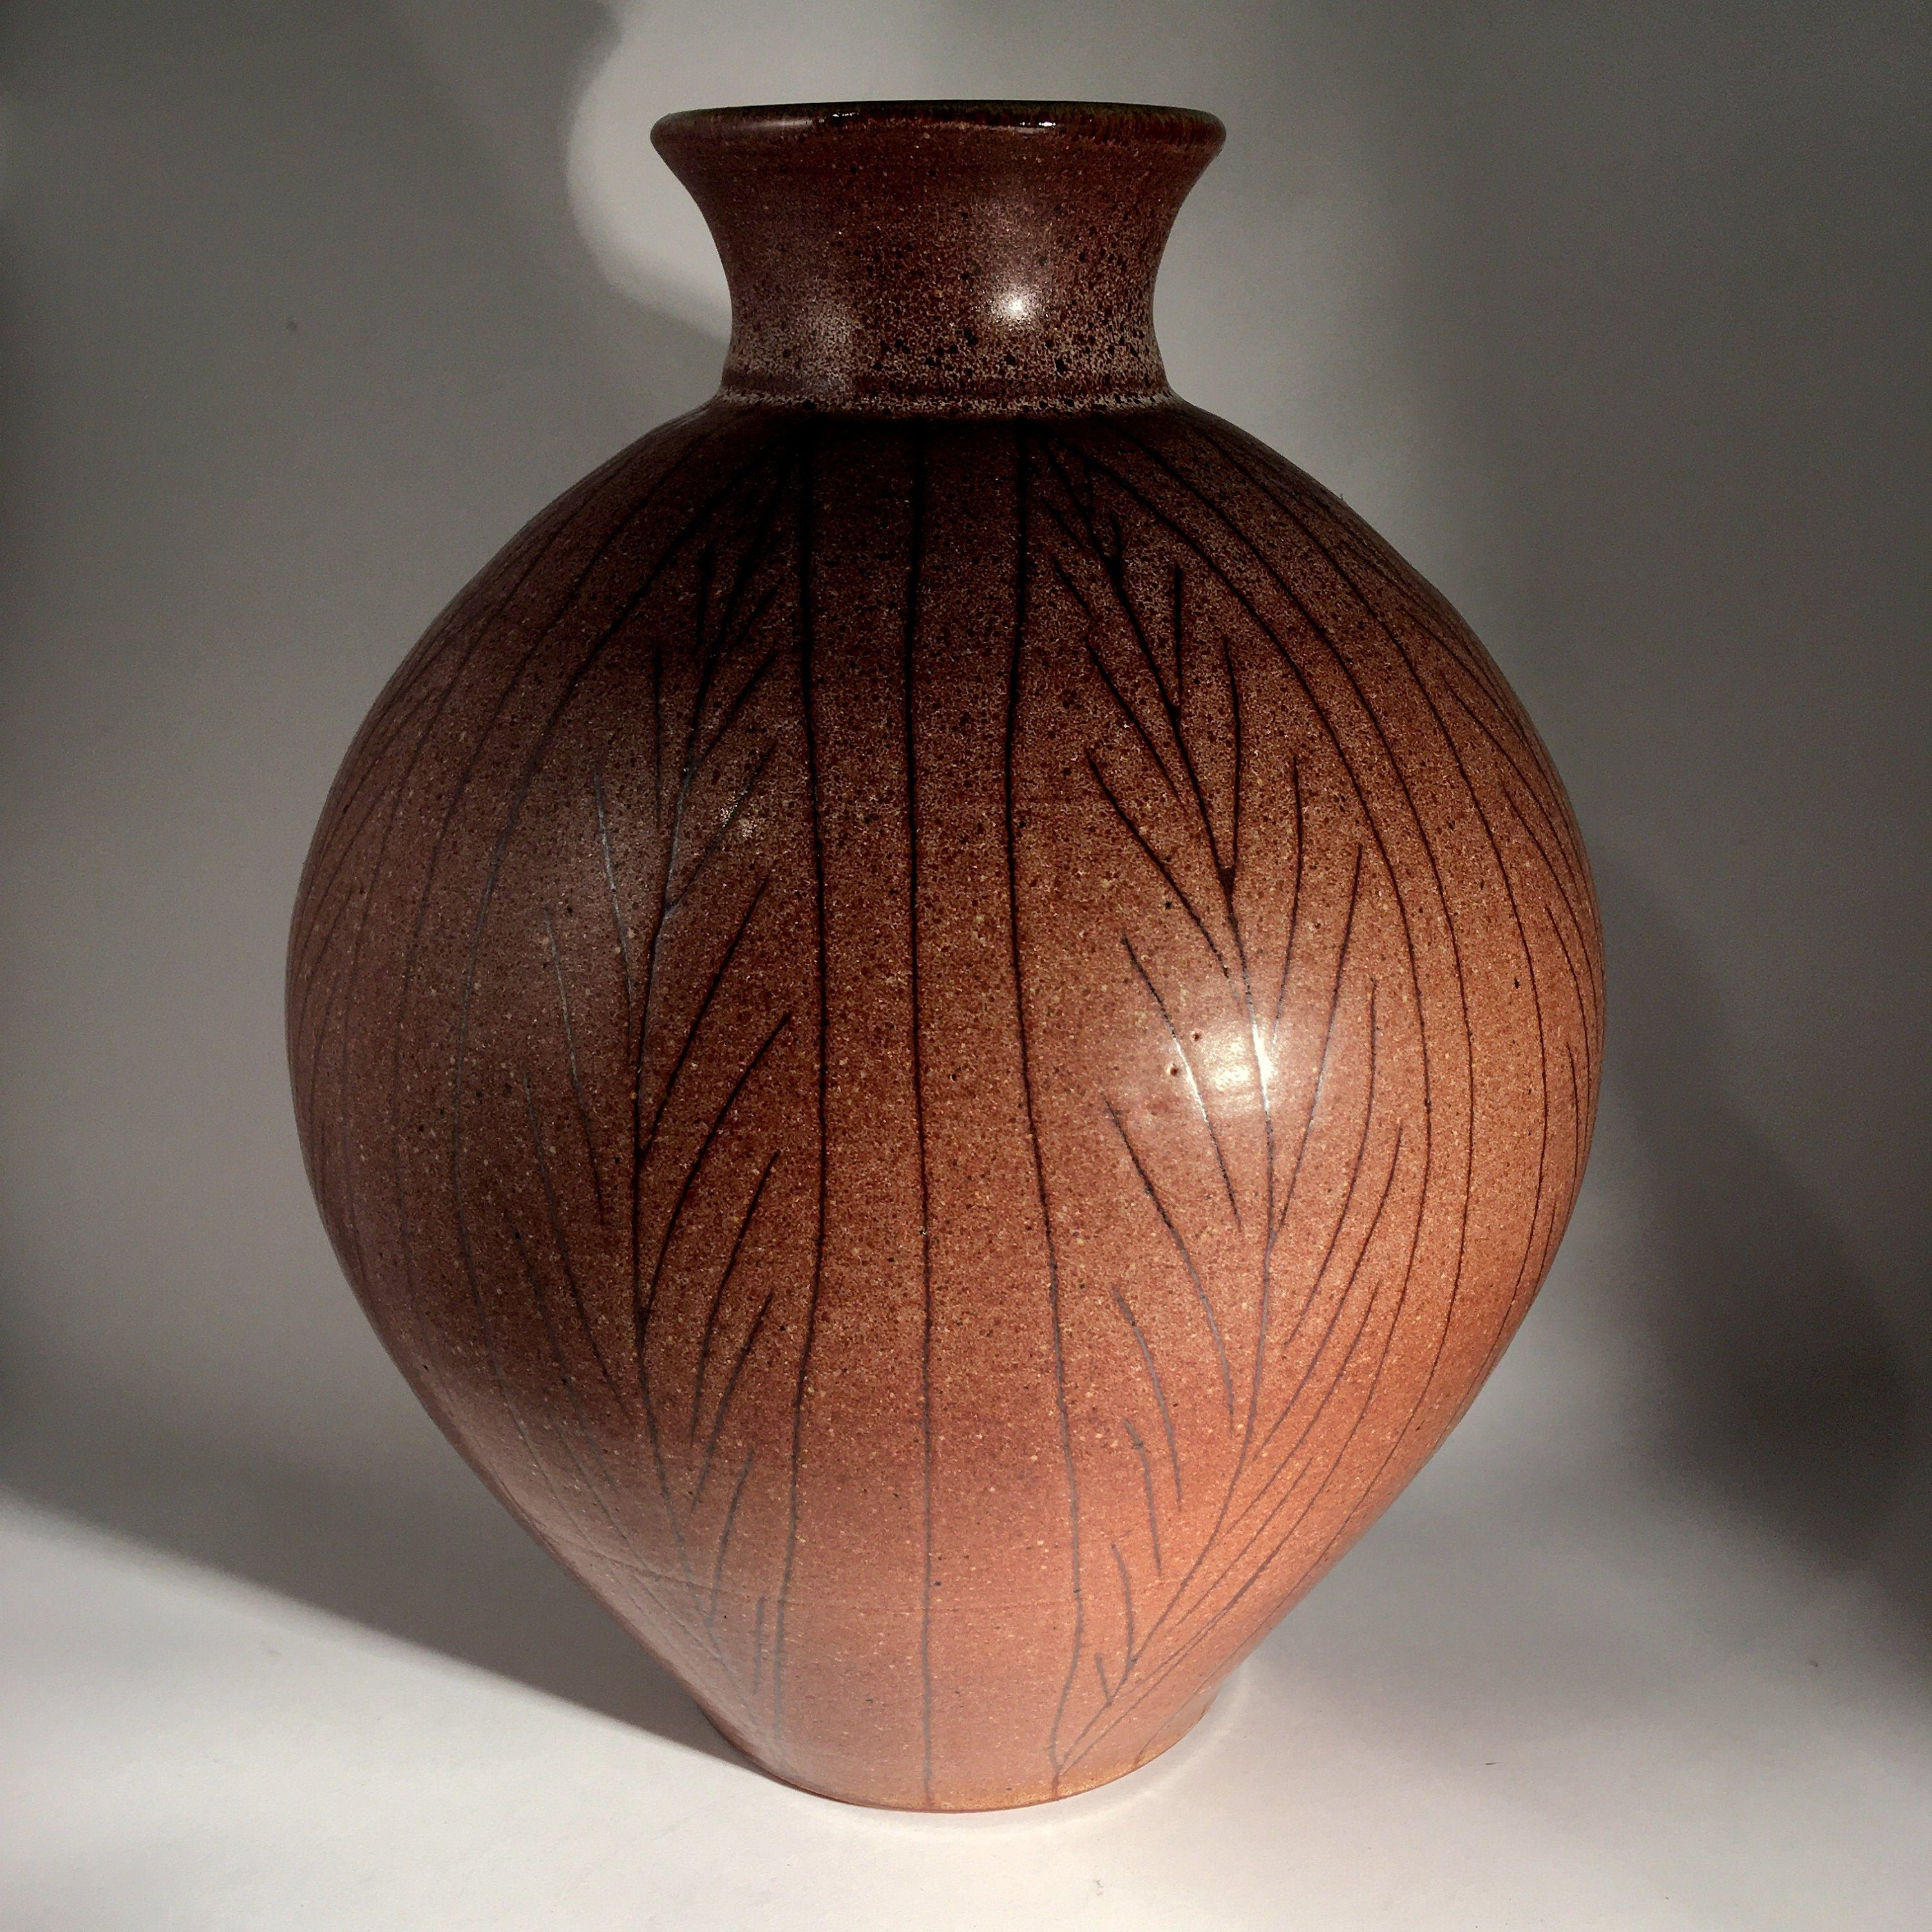 Bud Vase Studio Pottery Connie Pike Vintage Pike Pottery Candle Holder Brown on Beige Canadian Pottery Bob Pike